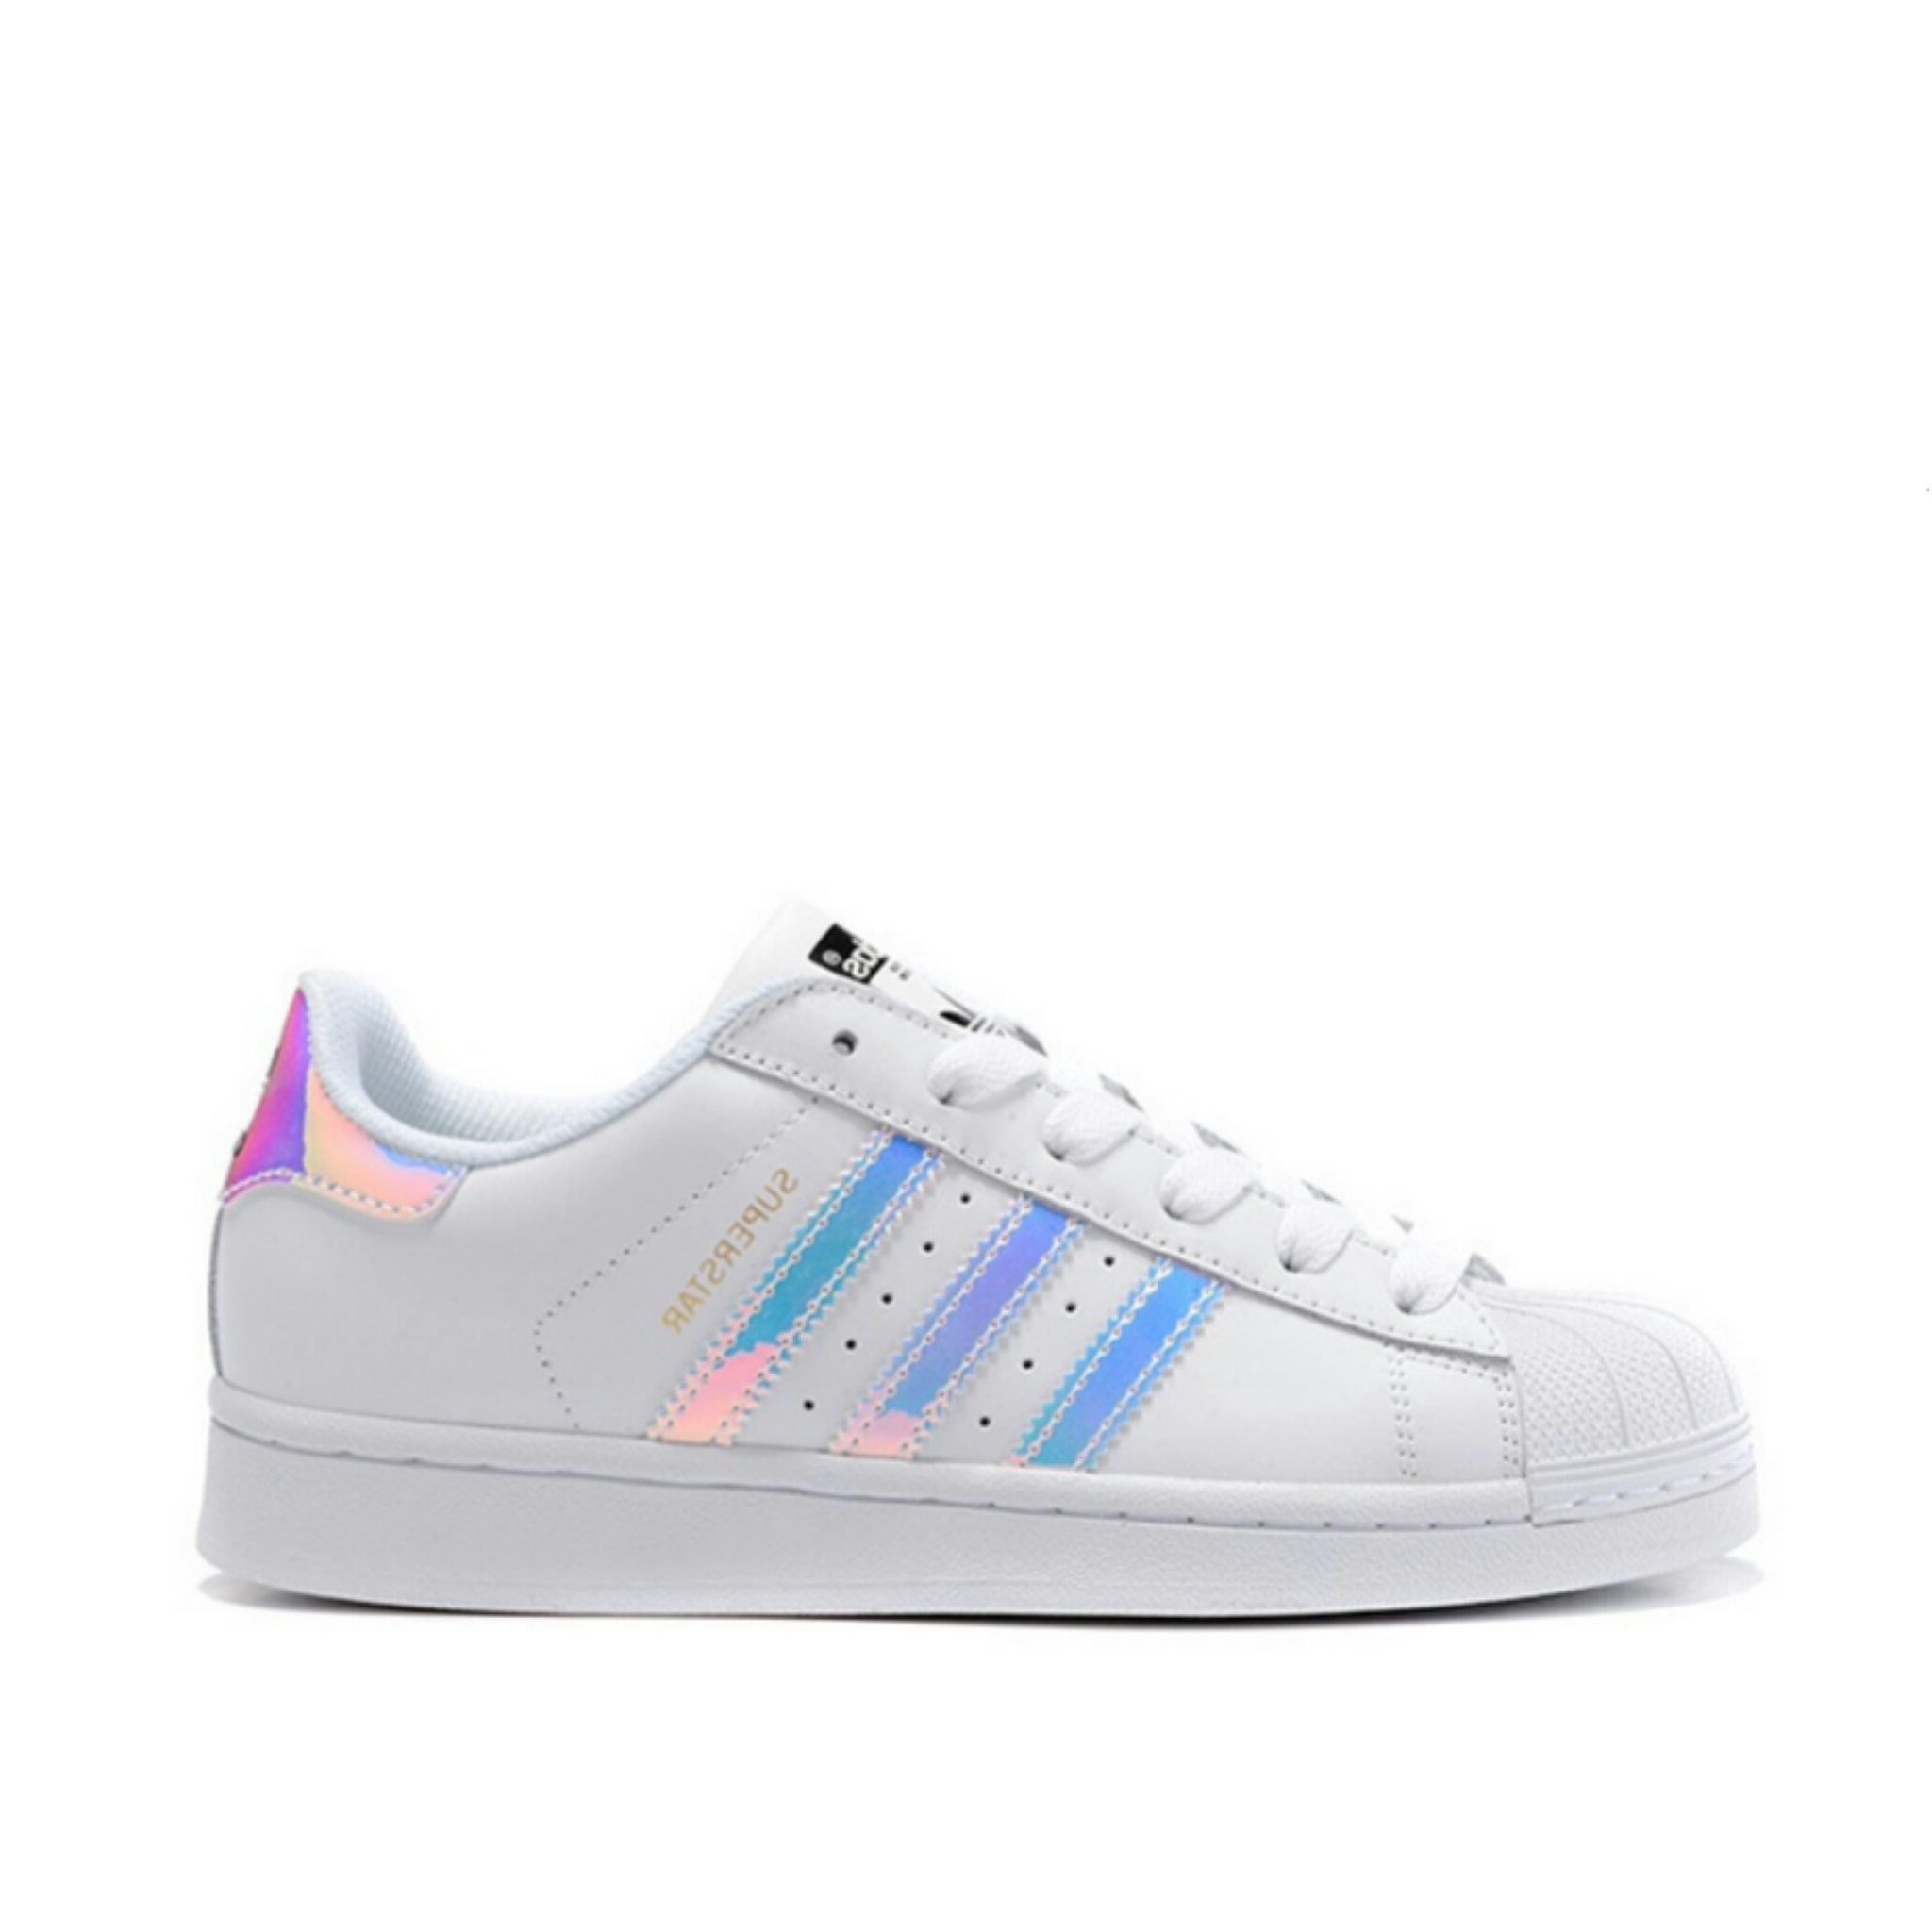 adidas superstar holographic